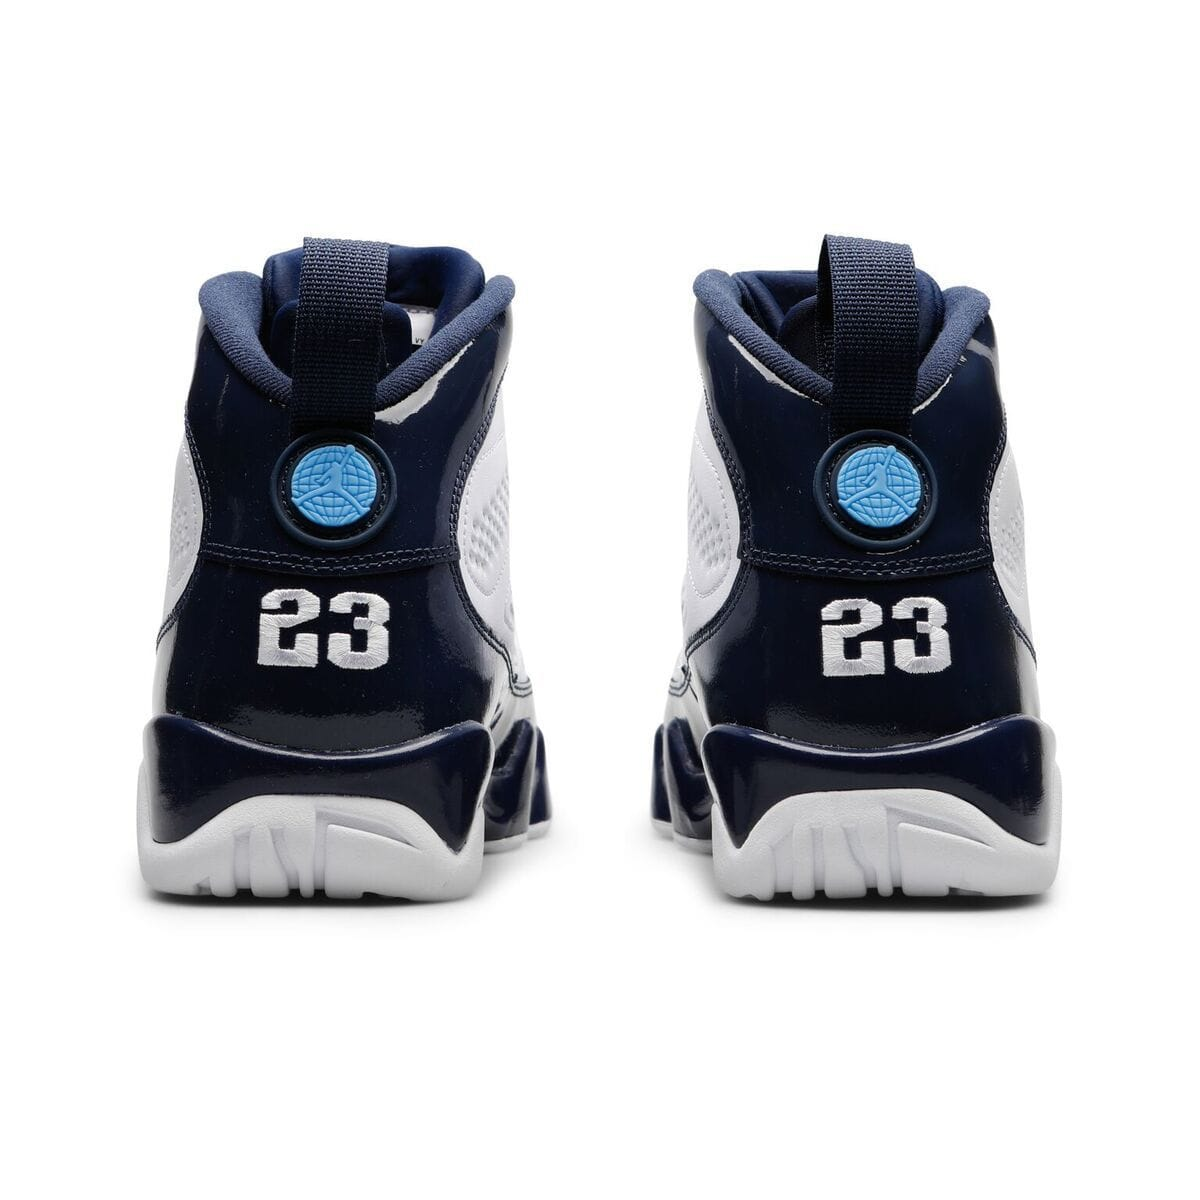 e08a5a197e89 AIR JORDAN 9 RETRO (WHITE UNIVERSITY BLUE-MIDNIGHT NAVY)  302370-145 ...